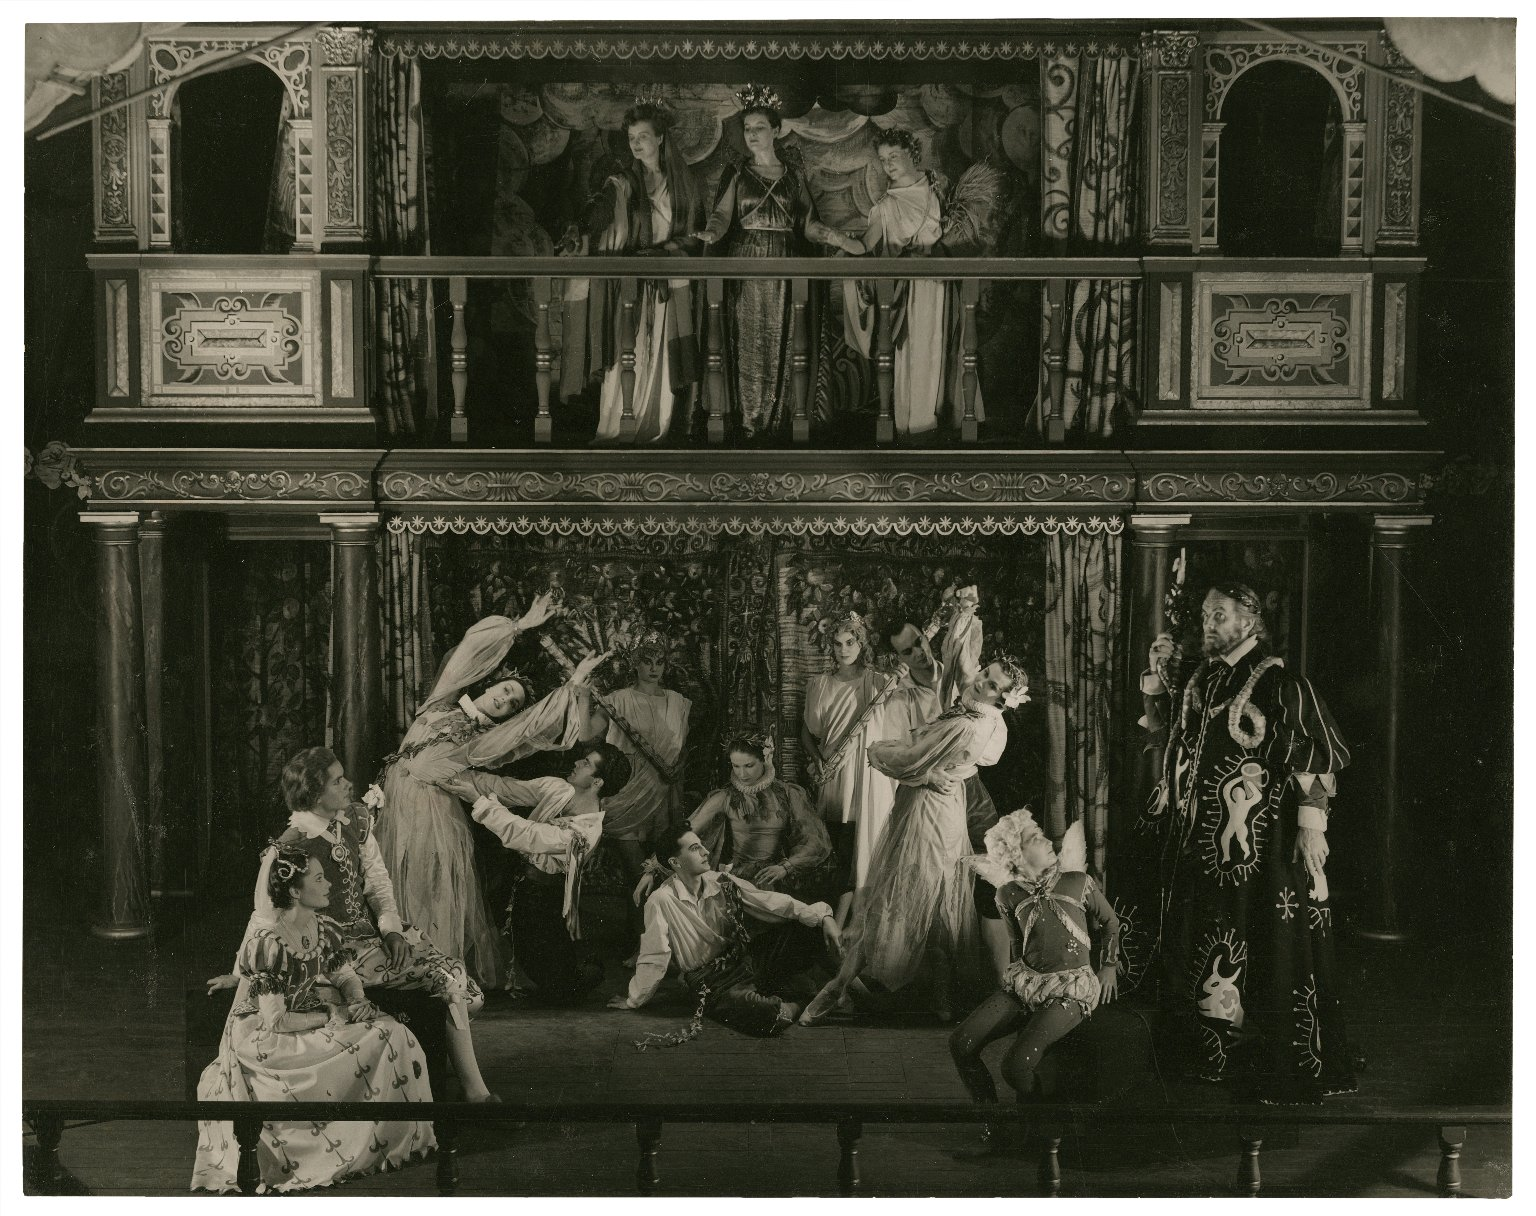 Production photo of The Tempest (at the Mermaid theatre, costumes by C. Walter Hodges)